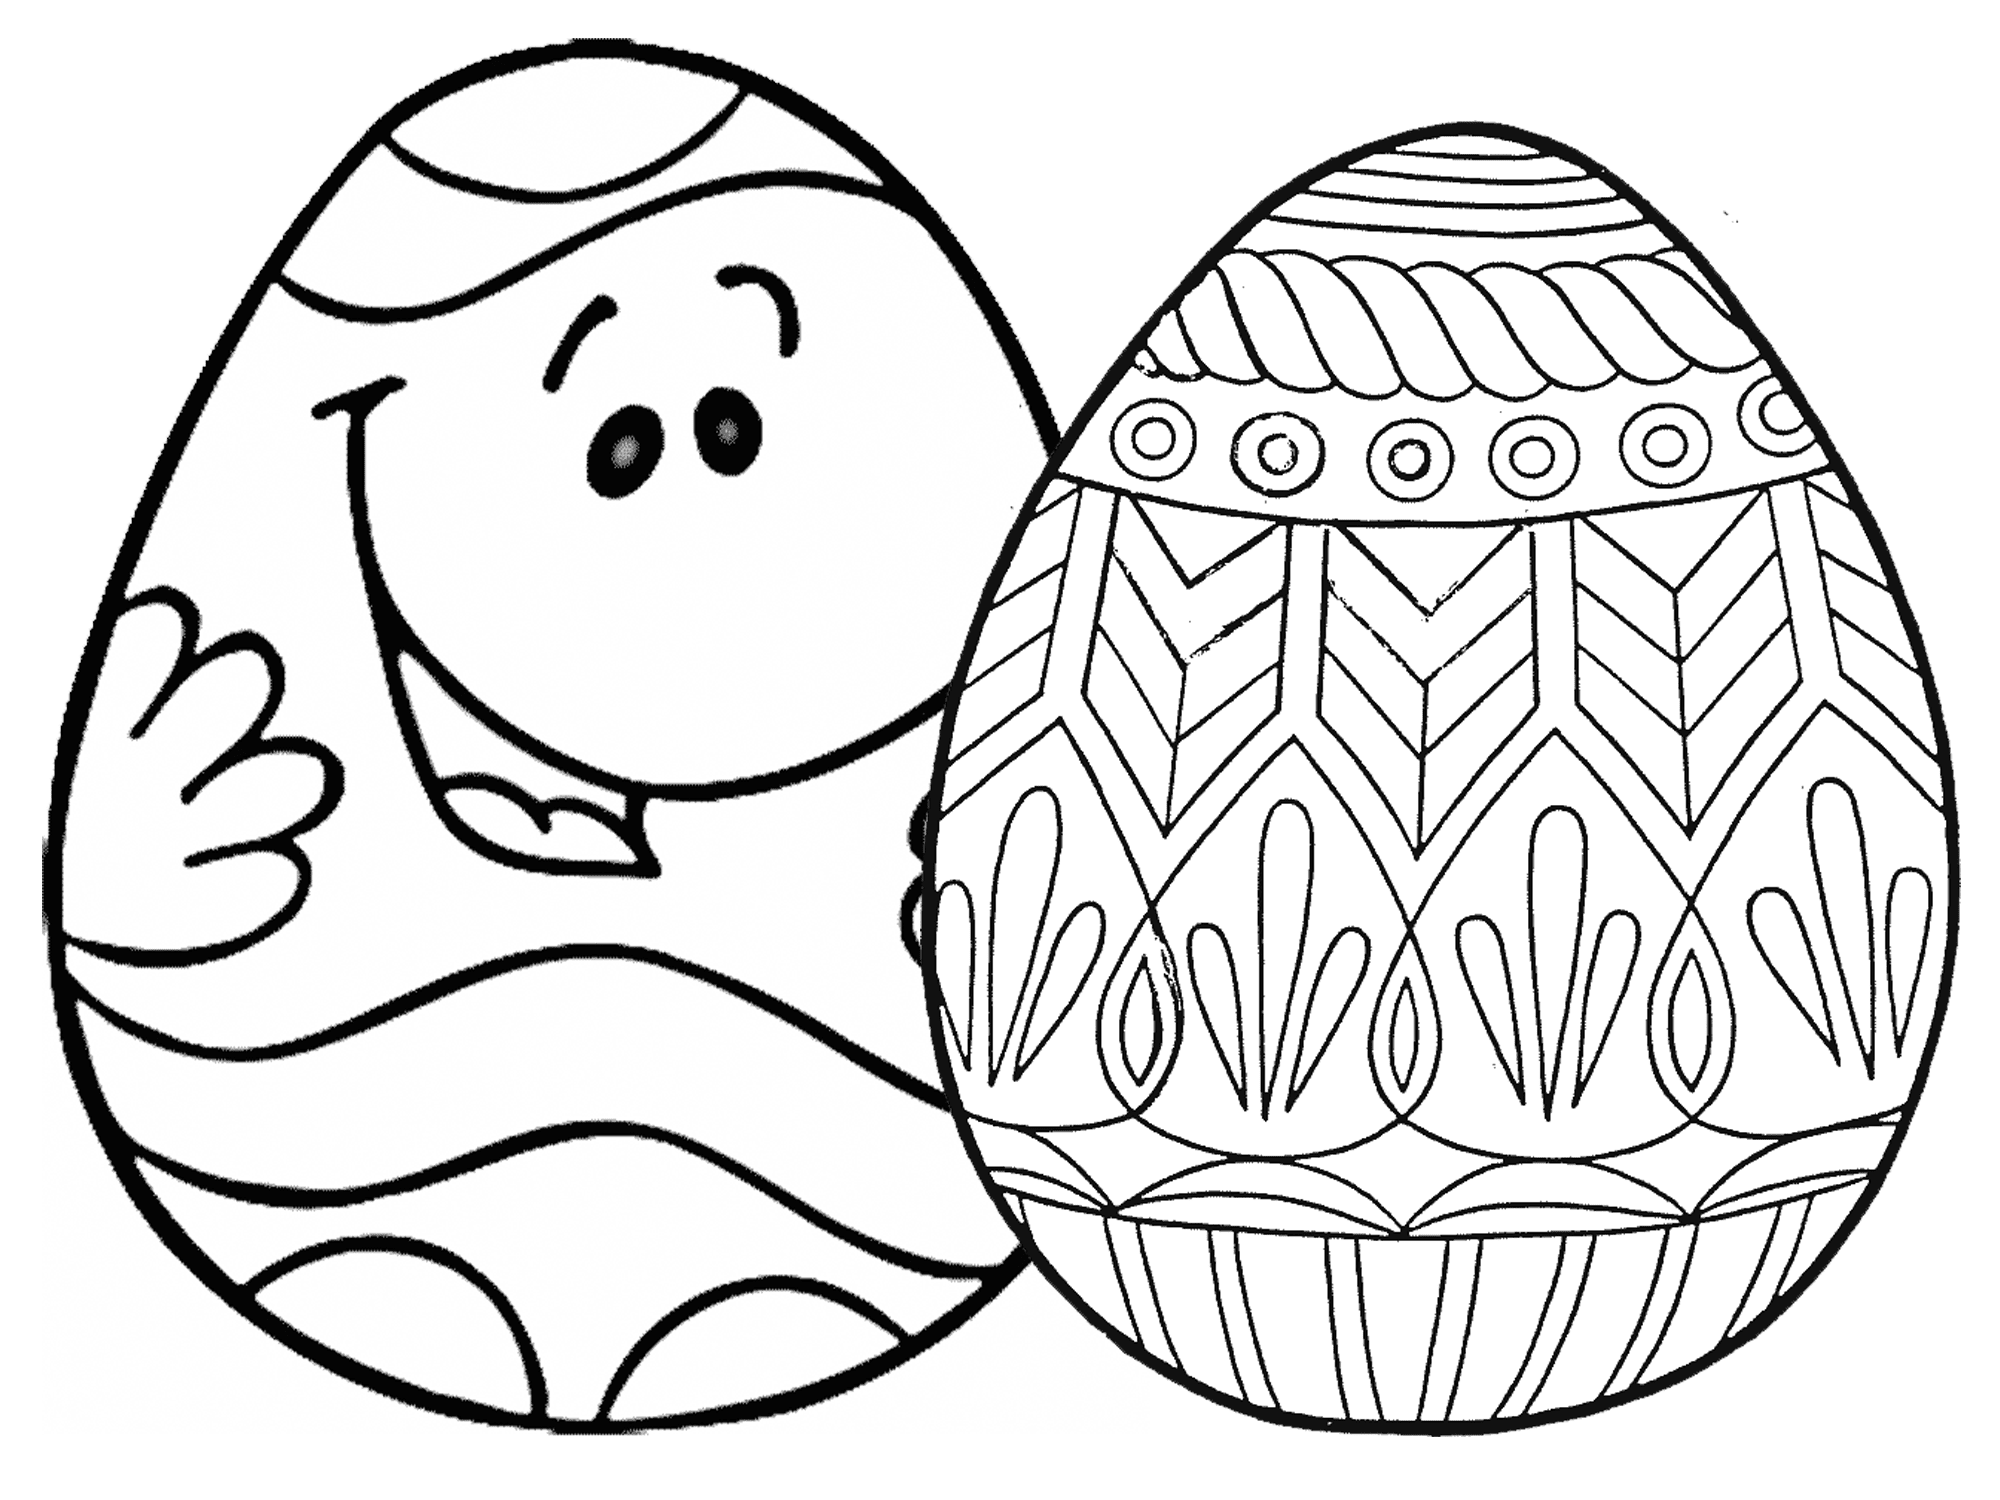 217 Free Printable Easter Egg Coloring Pages Egg Colouring Page